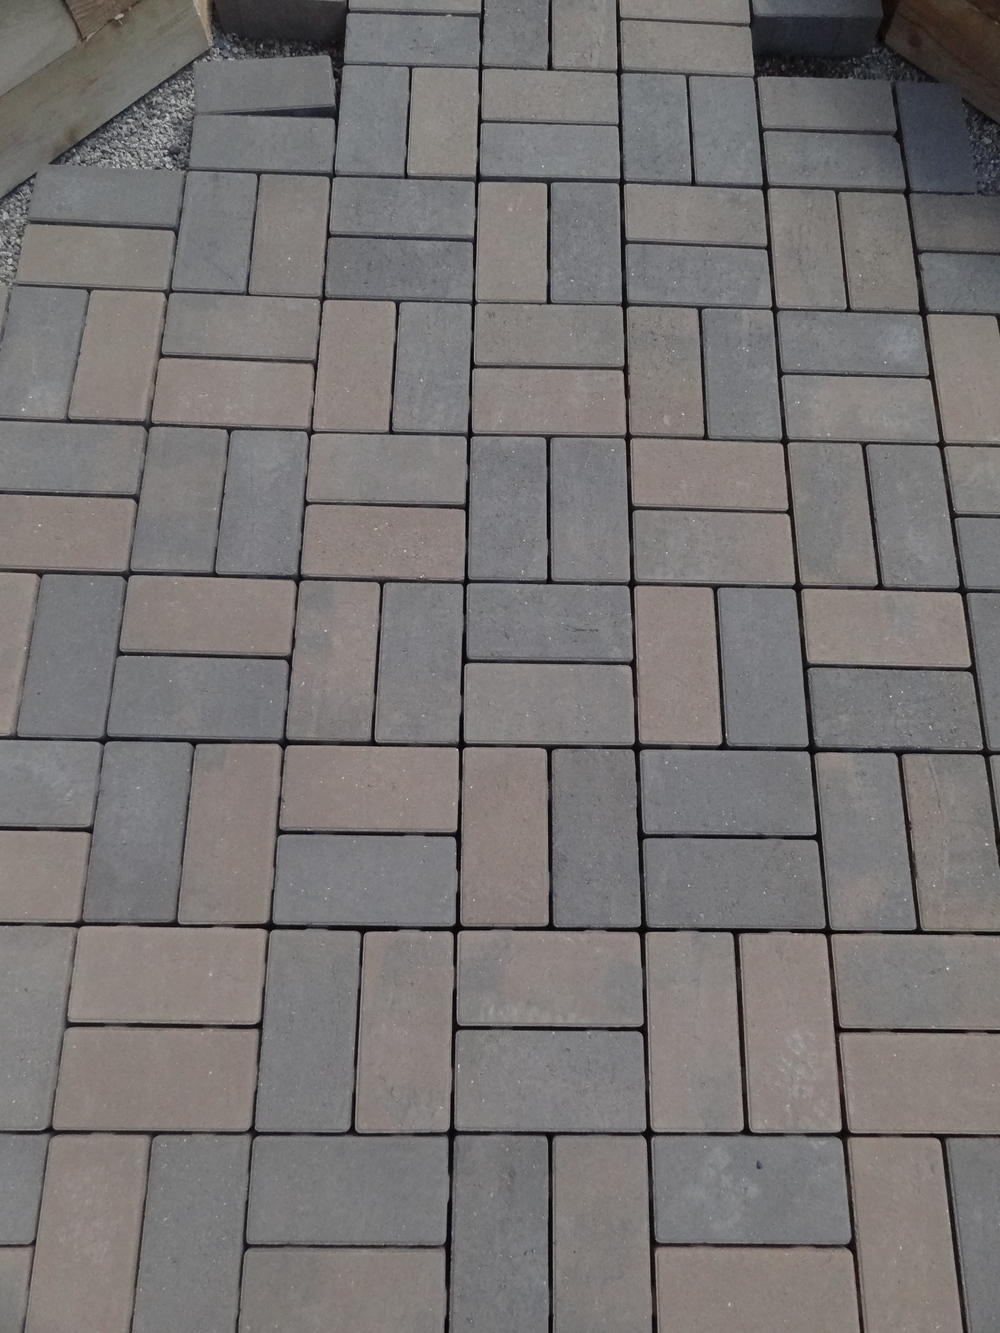 new permeable pavers (made from recycled fly-ash)